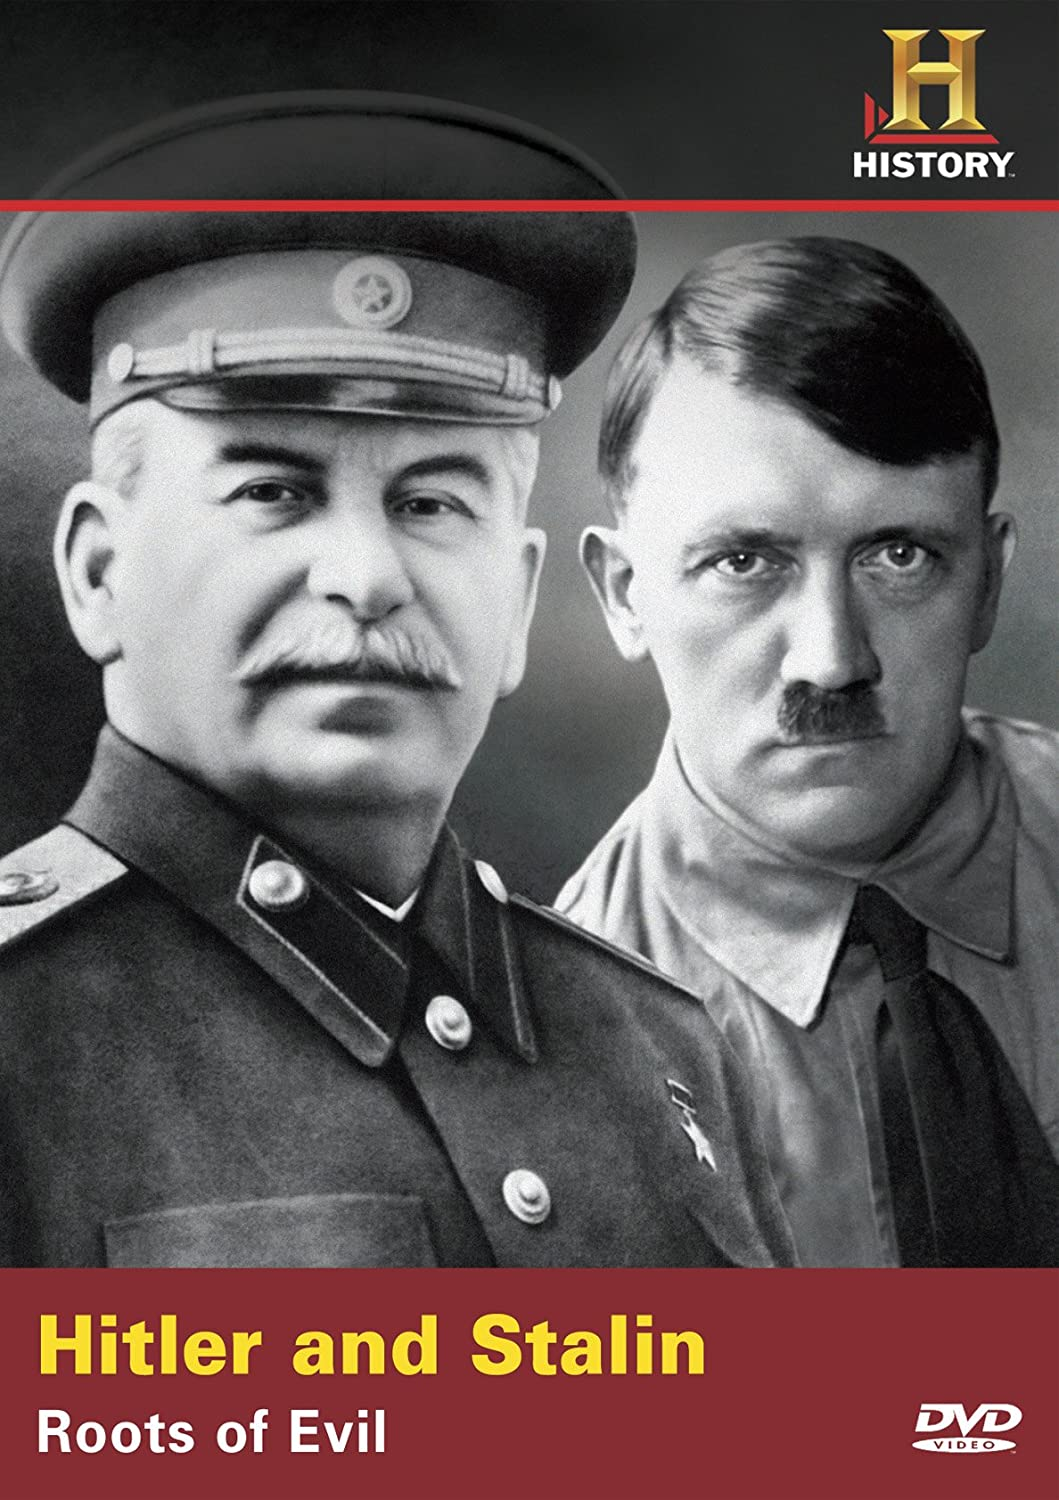 a comparison of hitler and stalin in their rise to power Hitler vs stalin: rising to power overview hitler and stalin were both profound leaders in their rise to power through communism both are notoriously responsible for many deaths, a crash in their country's economy, and many other ethically controversial situations.